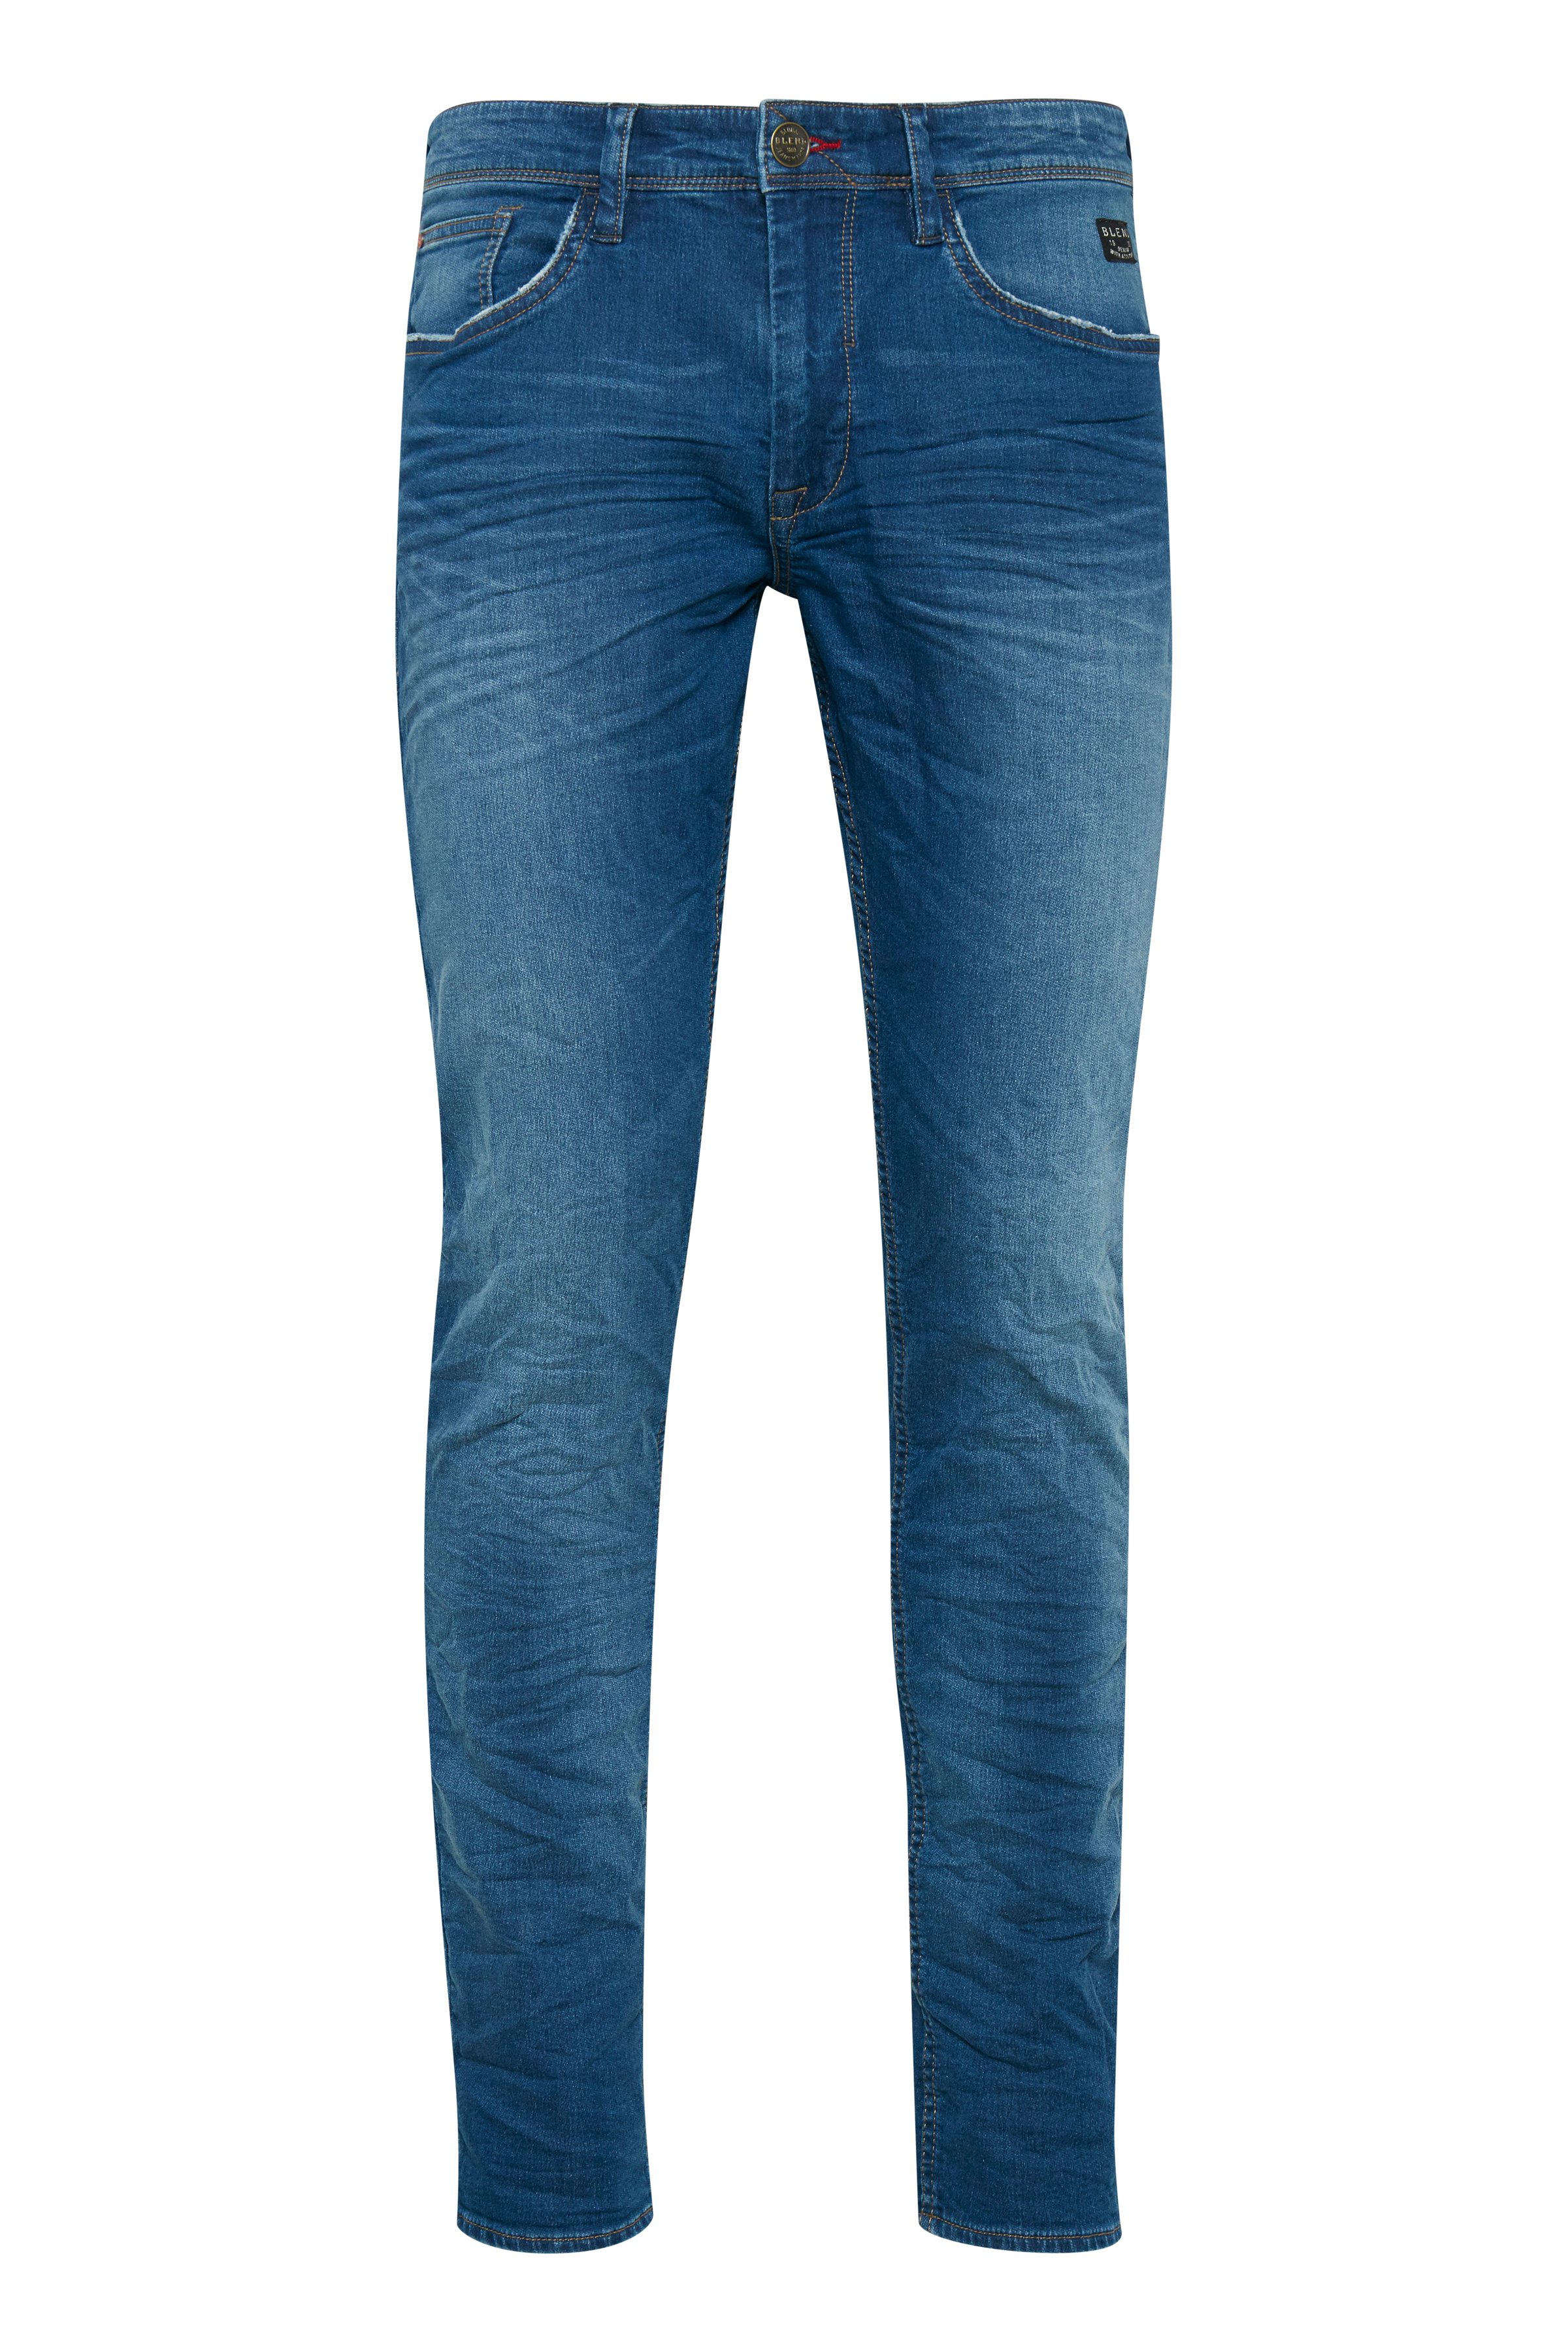 Denim Middle blue